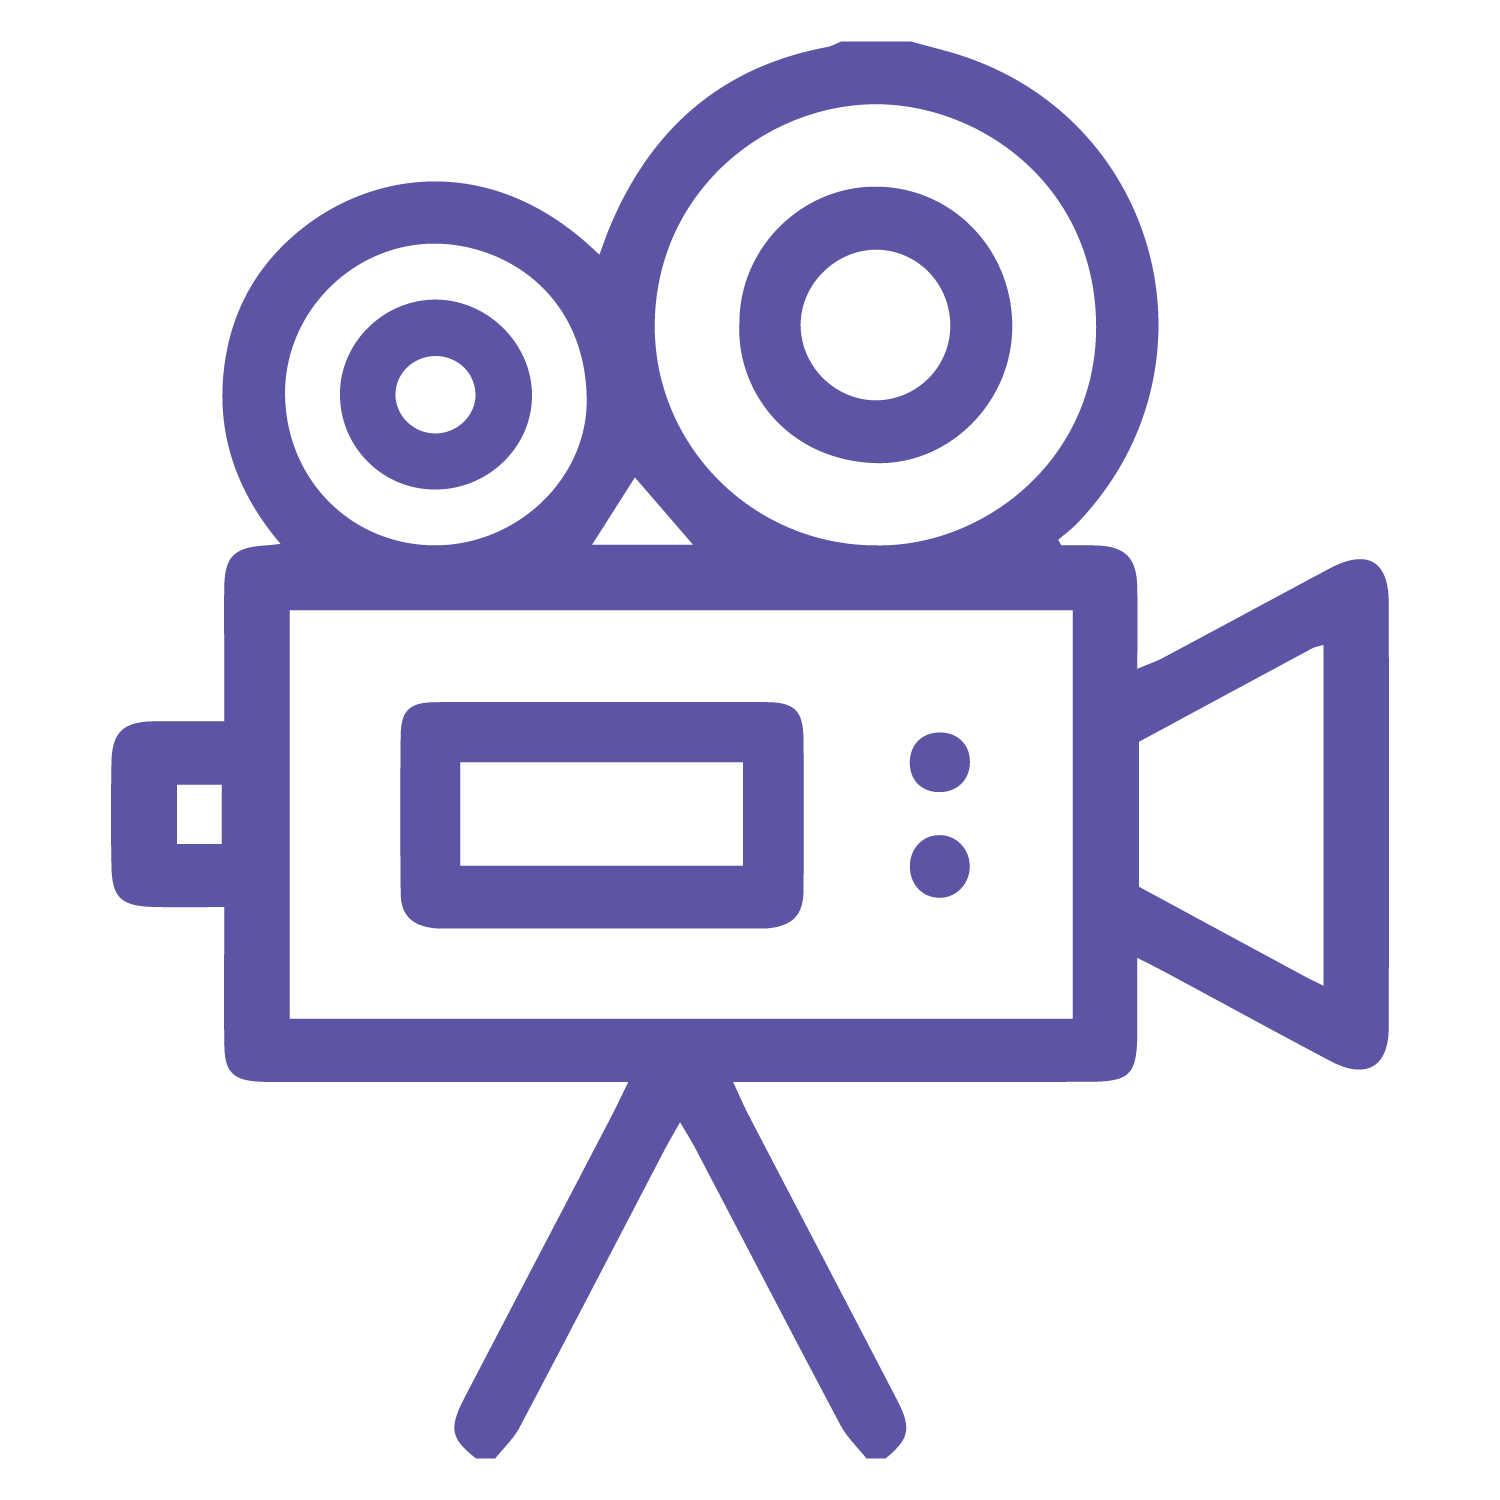 video production - Social videos that get results! Win more customers than ever before - quickly & reliably. Our in-house videos are carefully produced for maximum impact. Get all the capabilities of a big agency, for less than the cost of a small in-house team. Dedicated Team. Custom Creative.